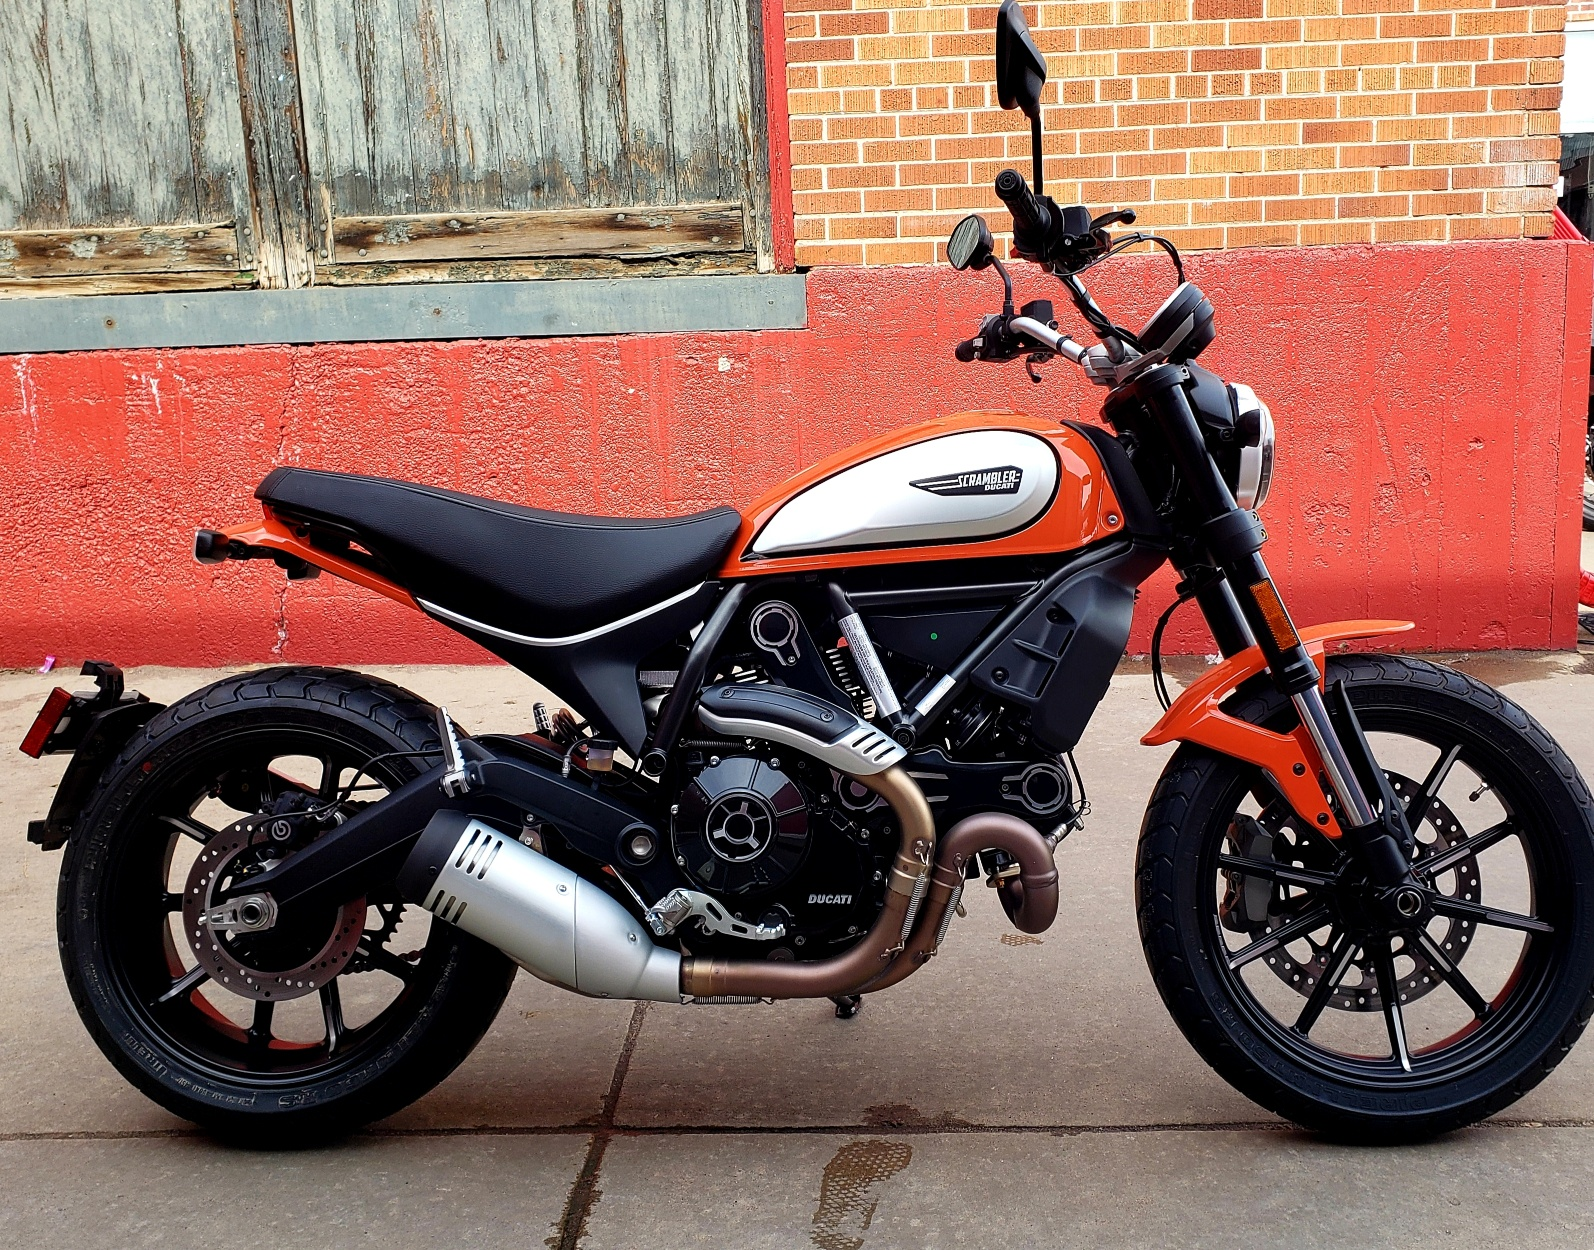 New 2019 DUCATI SCRAMBLER ICON 800